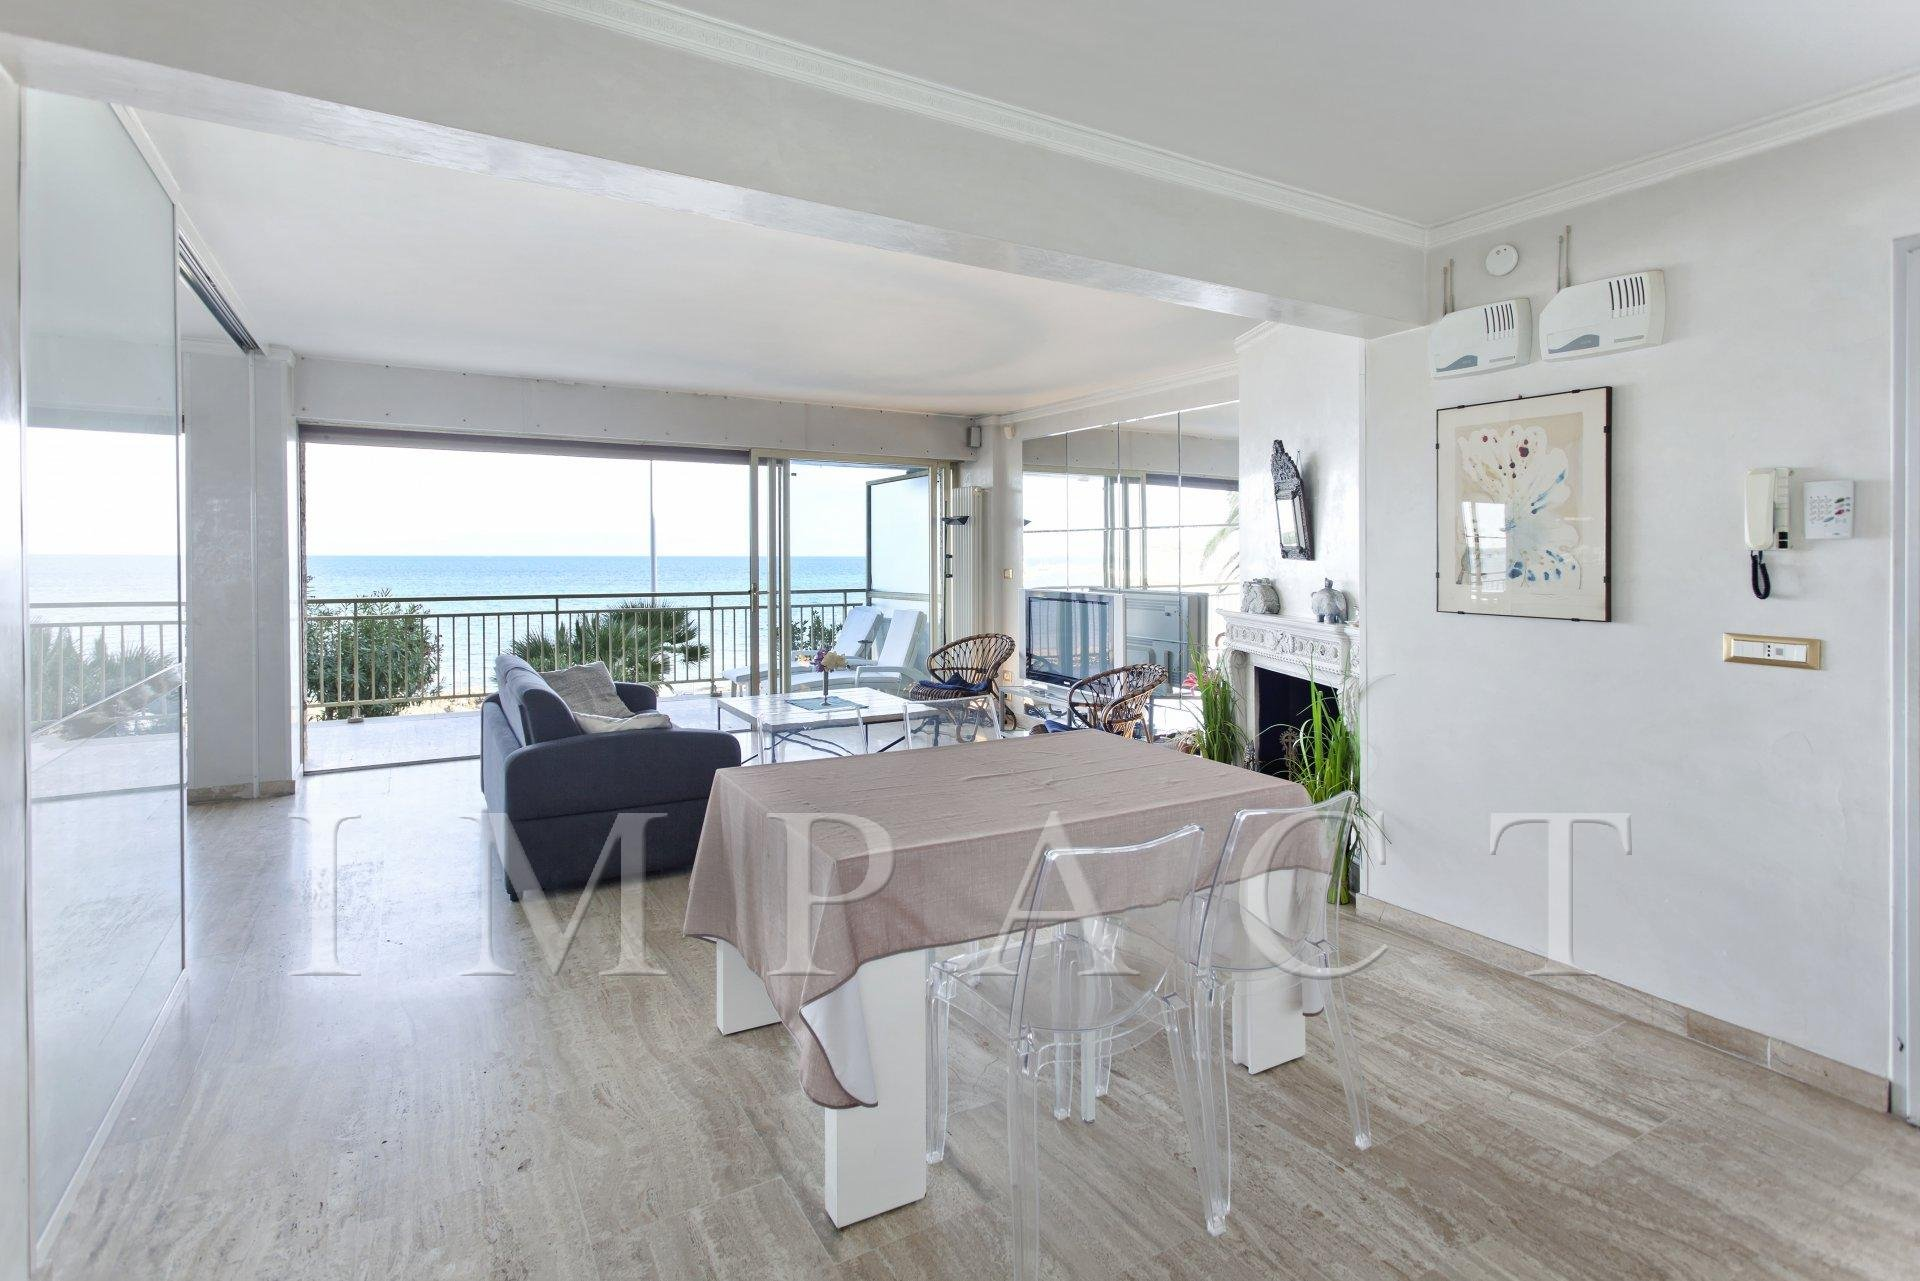 APPARTEMENT A VENDRE CANNES - BORD DE MER PALM BEACH